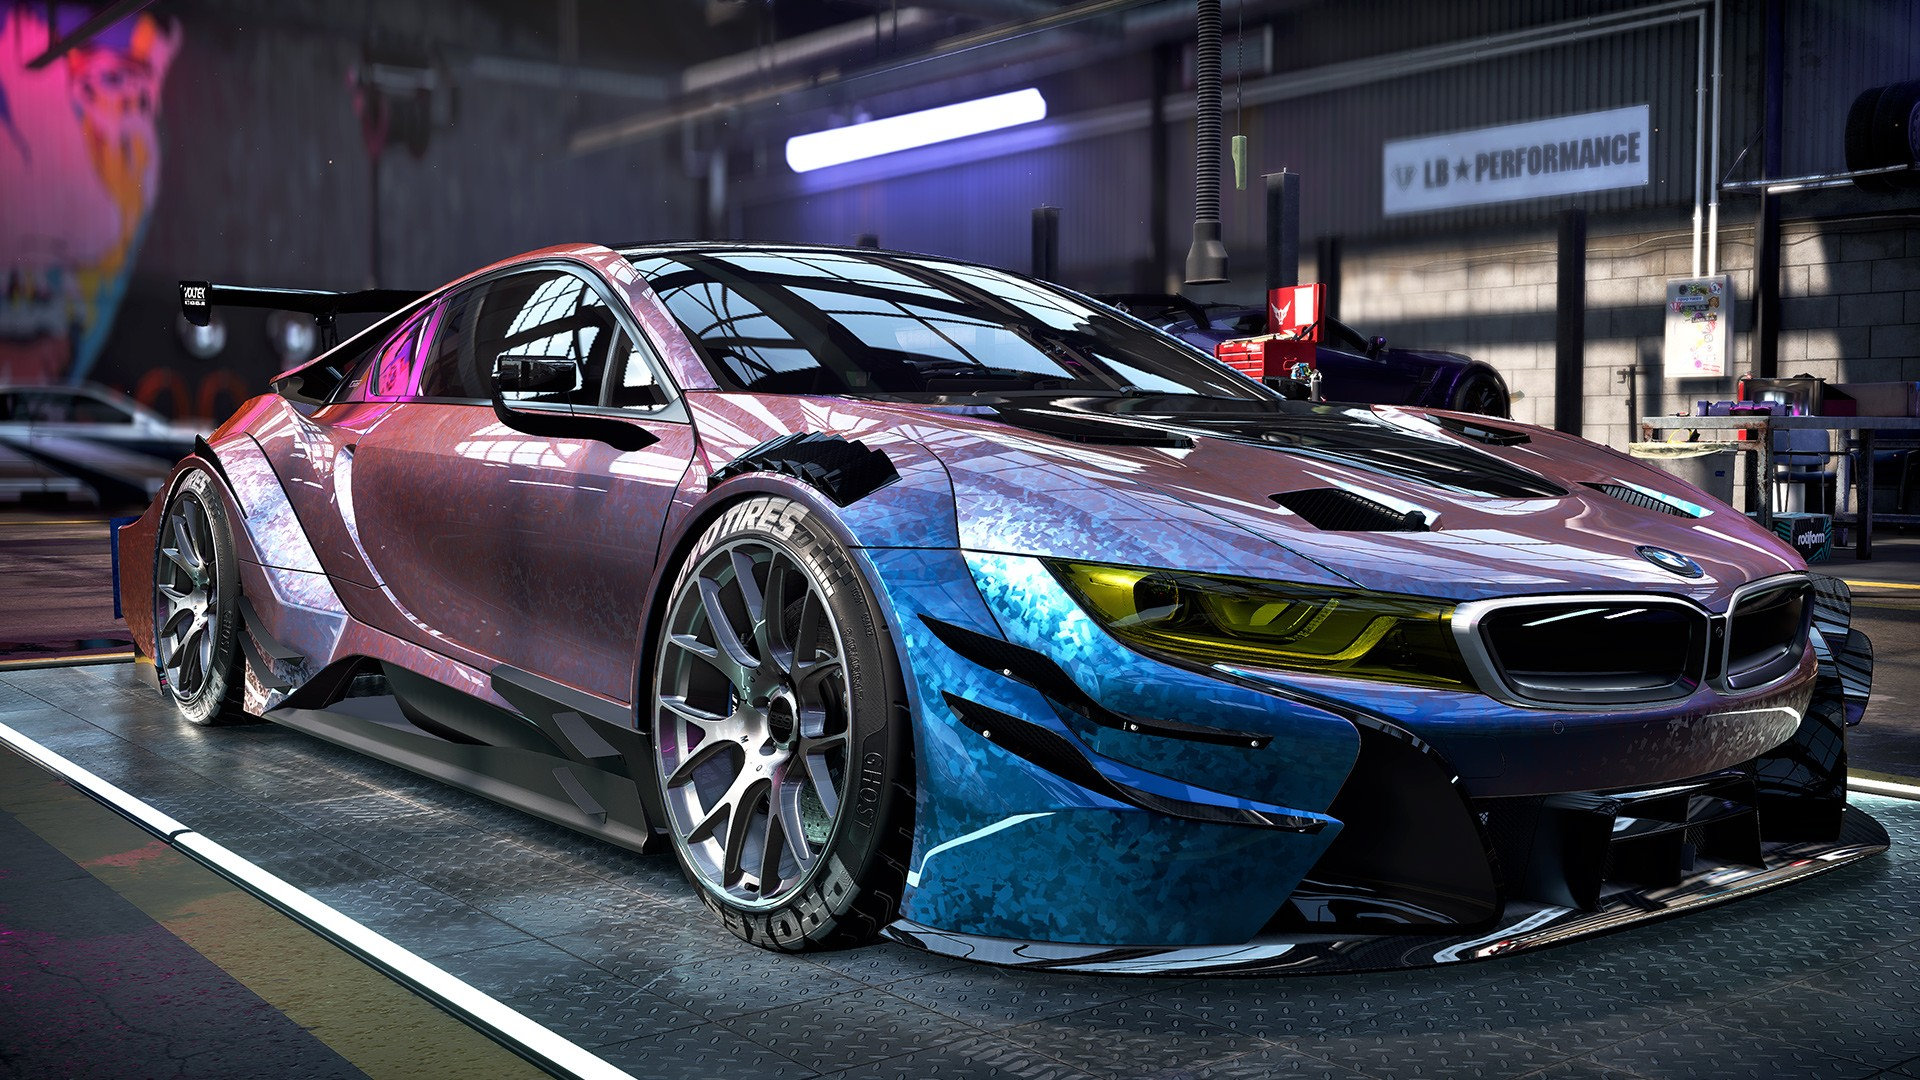 https://data3.origin.com/asset/content/dam/originx/web/app/games/need-for-speed/need-for-speed-heat/screenshots/NFS_1920x1080_Reveal_week_4_carcustomization_01_NoLogo.jpg/791780f7-9fca-4c77-badc-41bf28c1e1cc/original.jpg